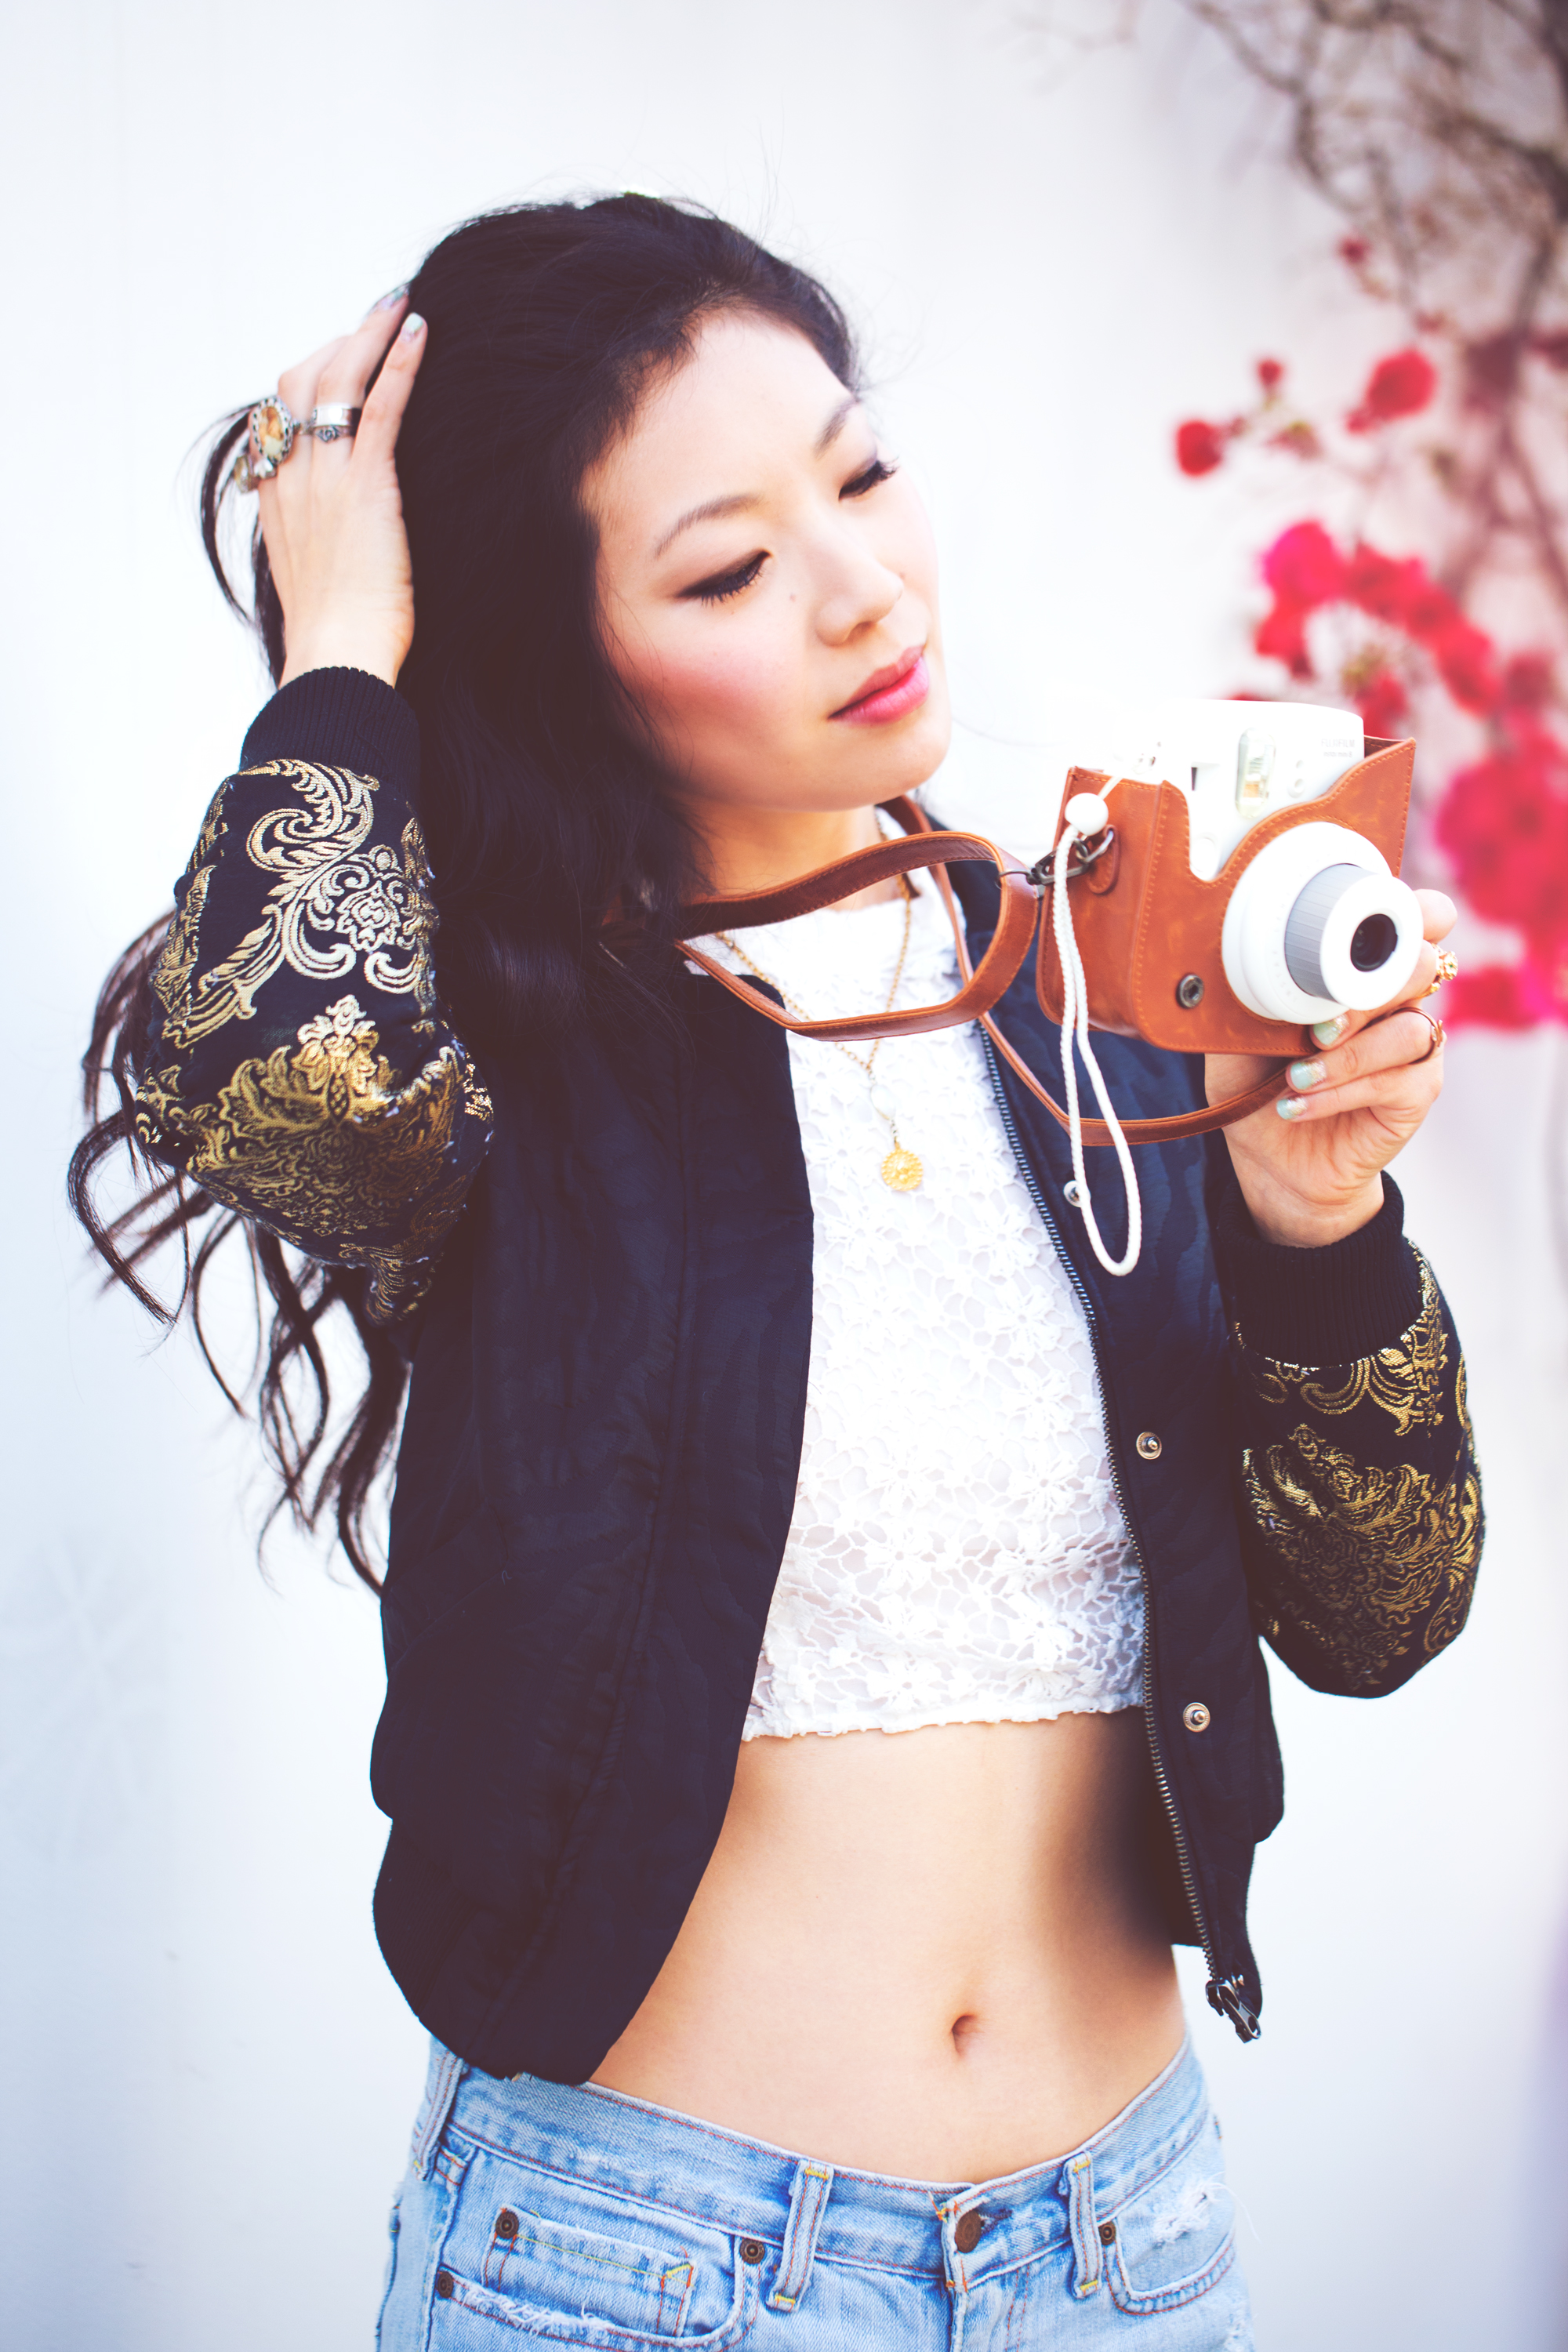 cindy chu, mioara dragan, photography, free people, fpme